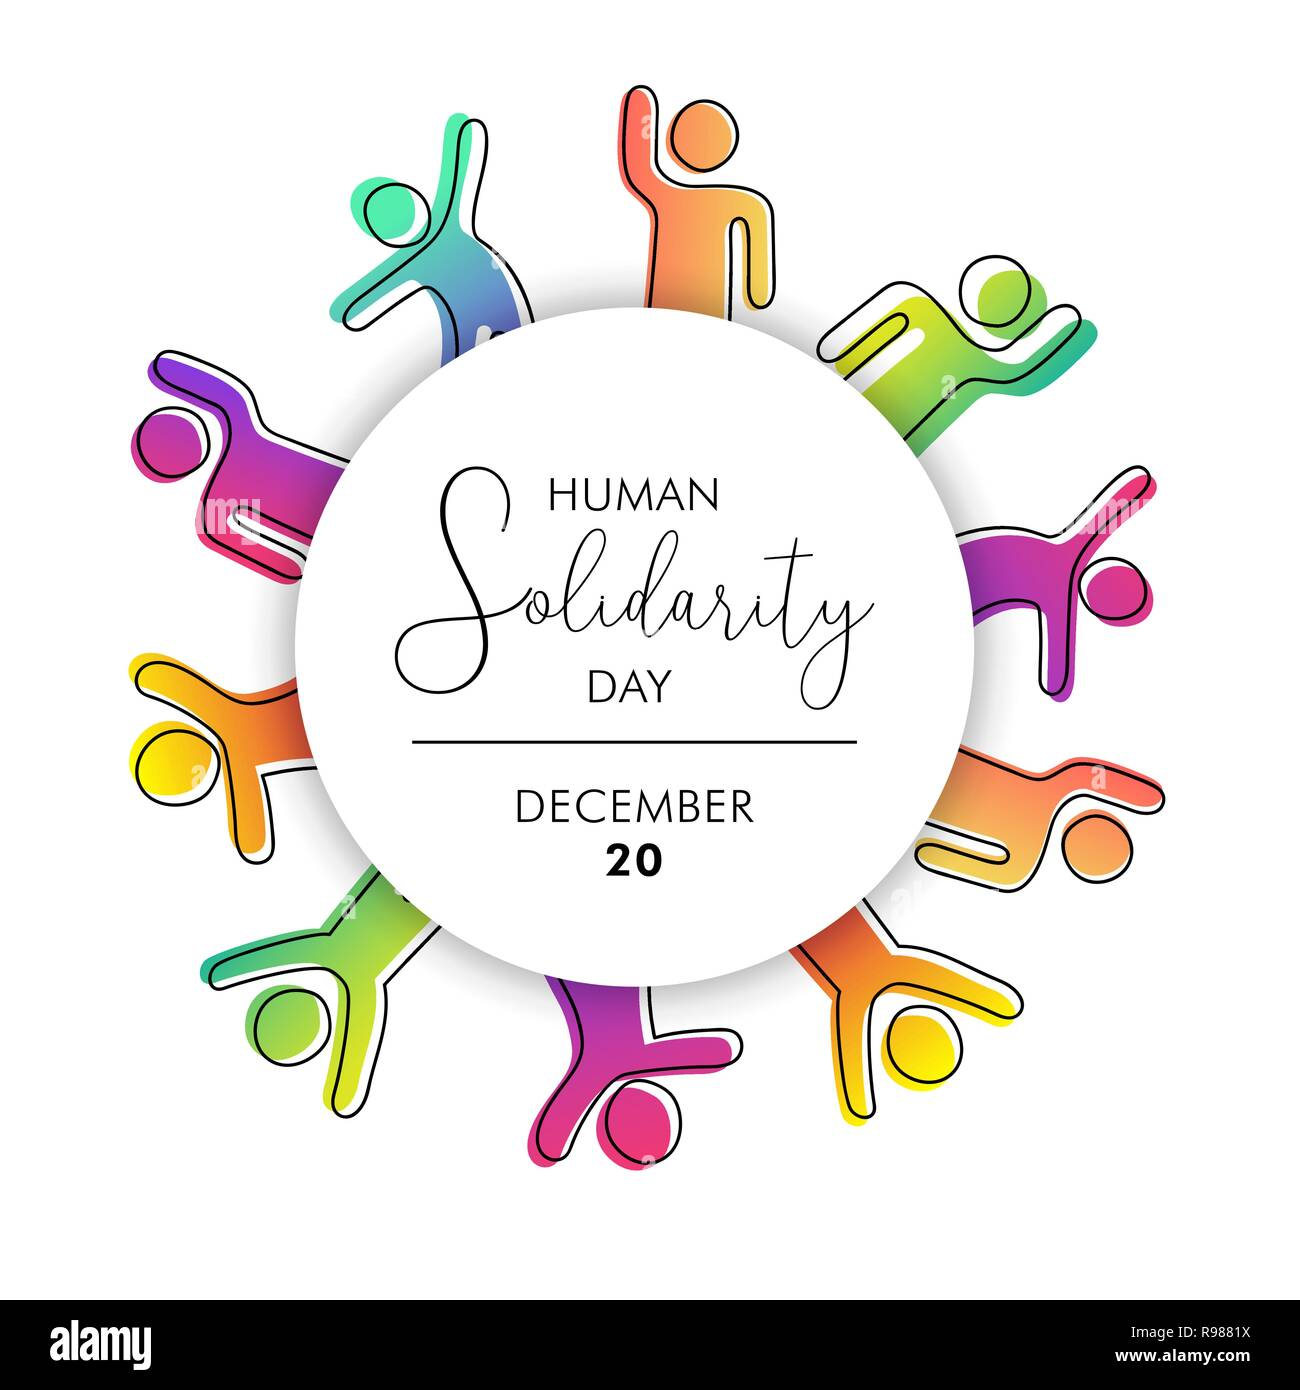 5a3f806533b2 International Human Solidarity Day illustration with diversity colorful  peoples helping each other for community help